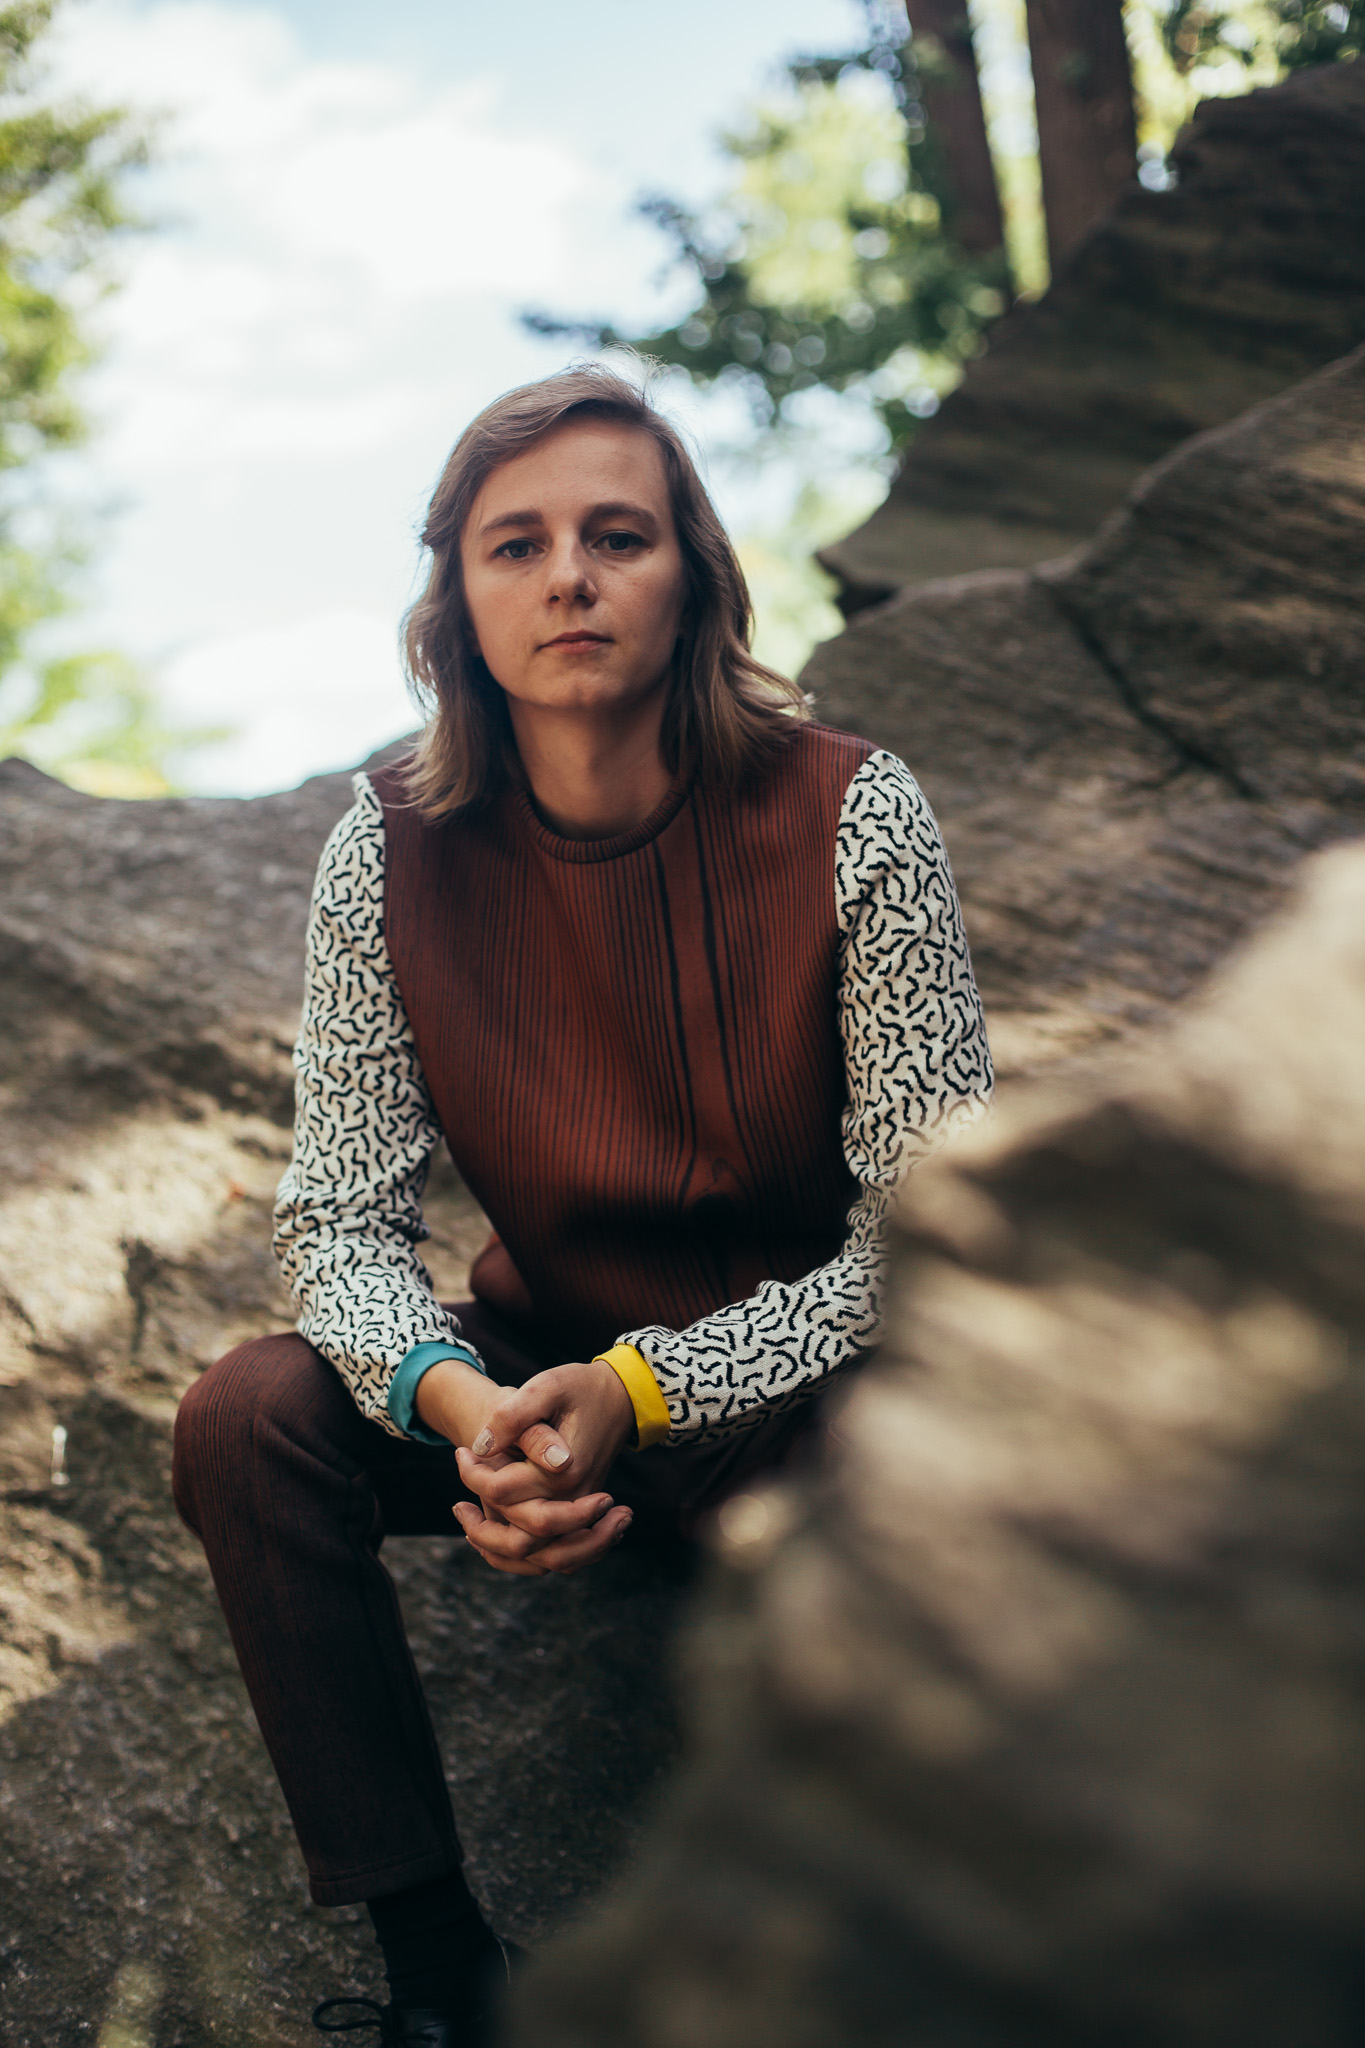 Portrait of Shannon sitting outside on a sunny day among large, flat rocks, smiling softly and looking off in another direction. She is wearing a wood grain sweatshirt and pant set. The sweatshirt has contrasting sleeves with a squiggle pattern and sleeve cuffs in two different colors